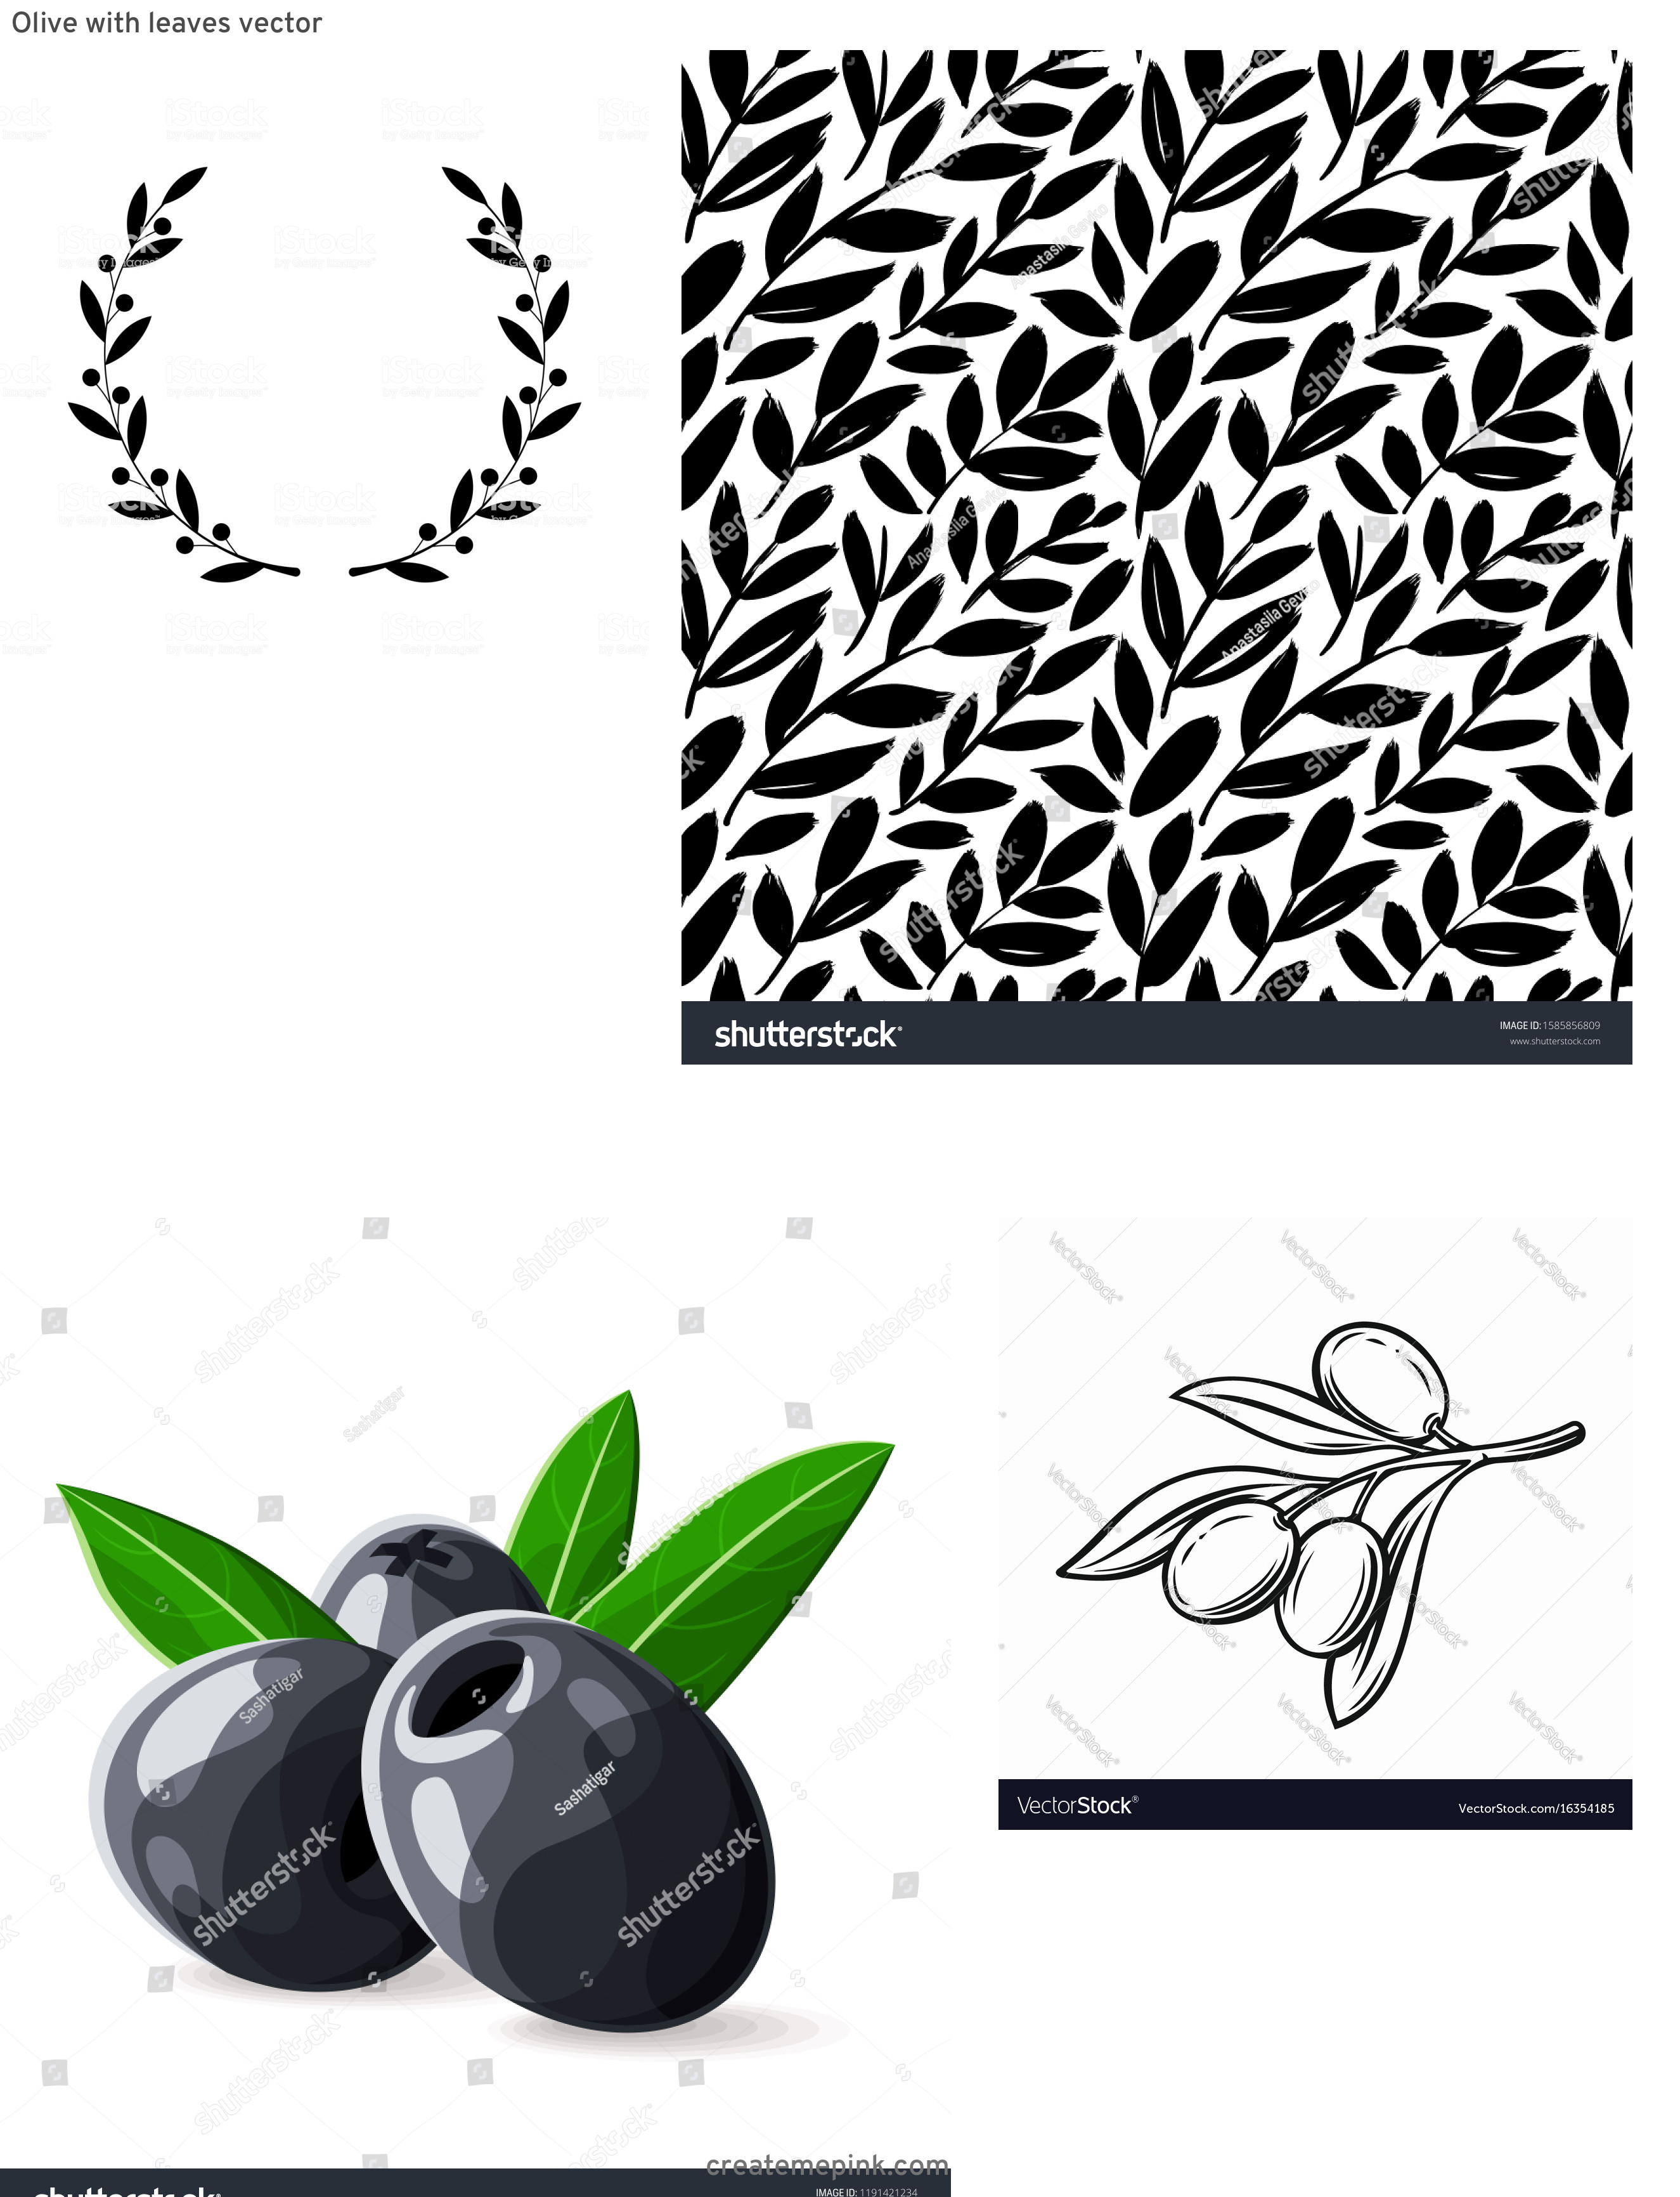 Olive Black And White Vector Leaves: Olive With Leaves Vector